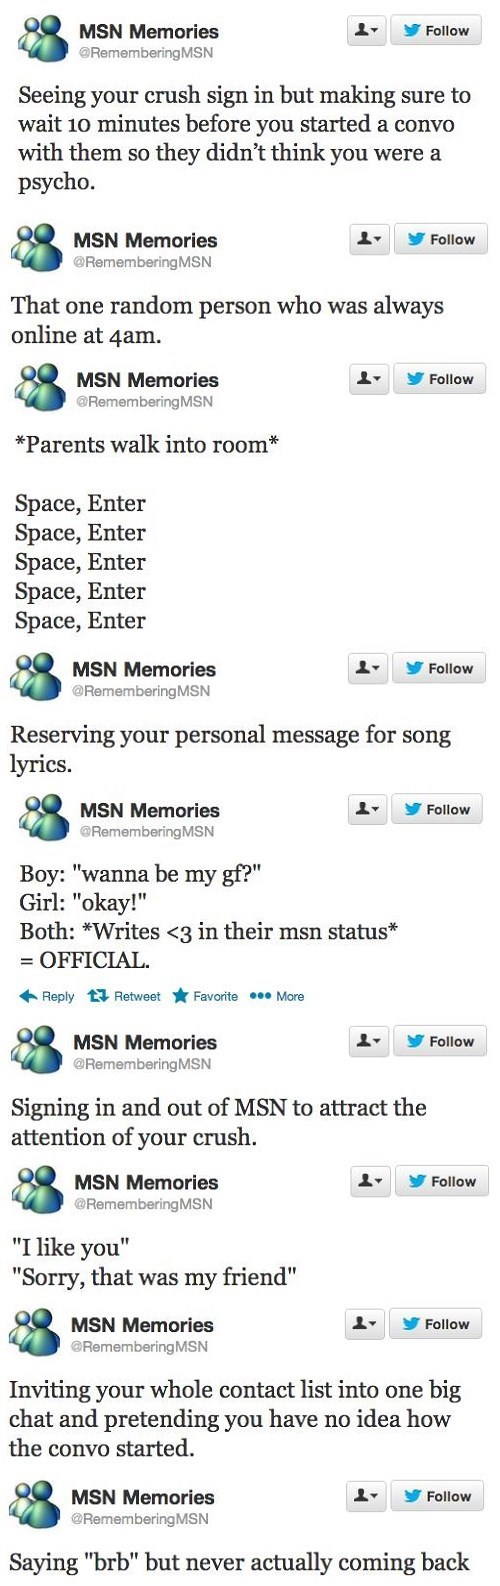 Nostalgia of the Day: Twitter Account @RememberingMSN is Here to Let You Reminisce About Those Long Nights Messaging Friends